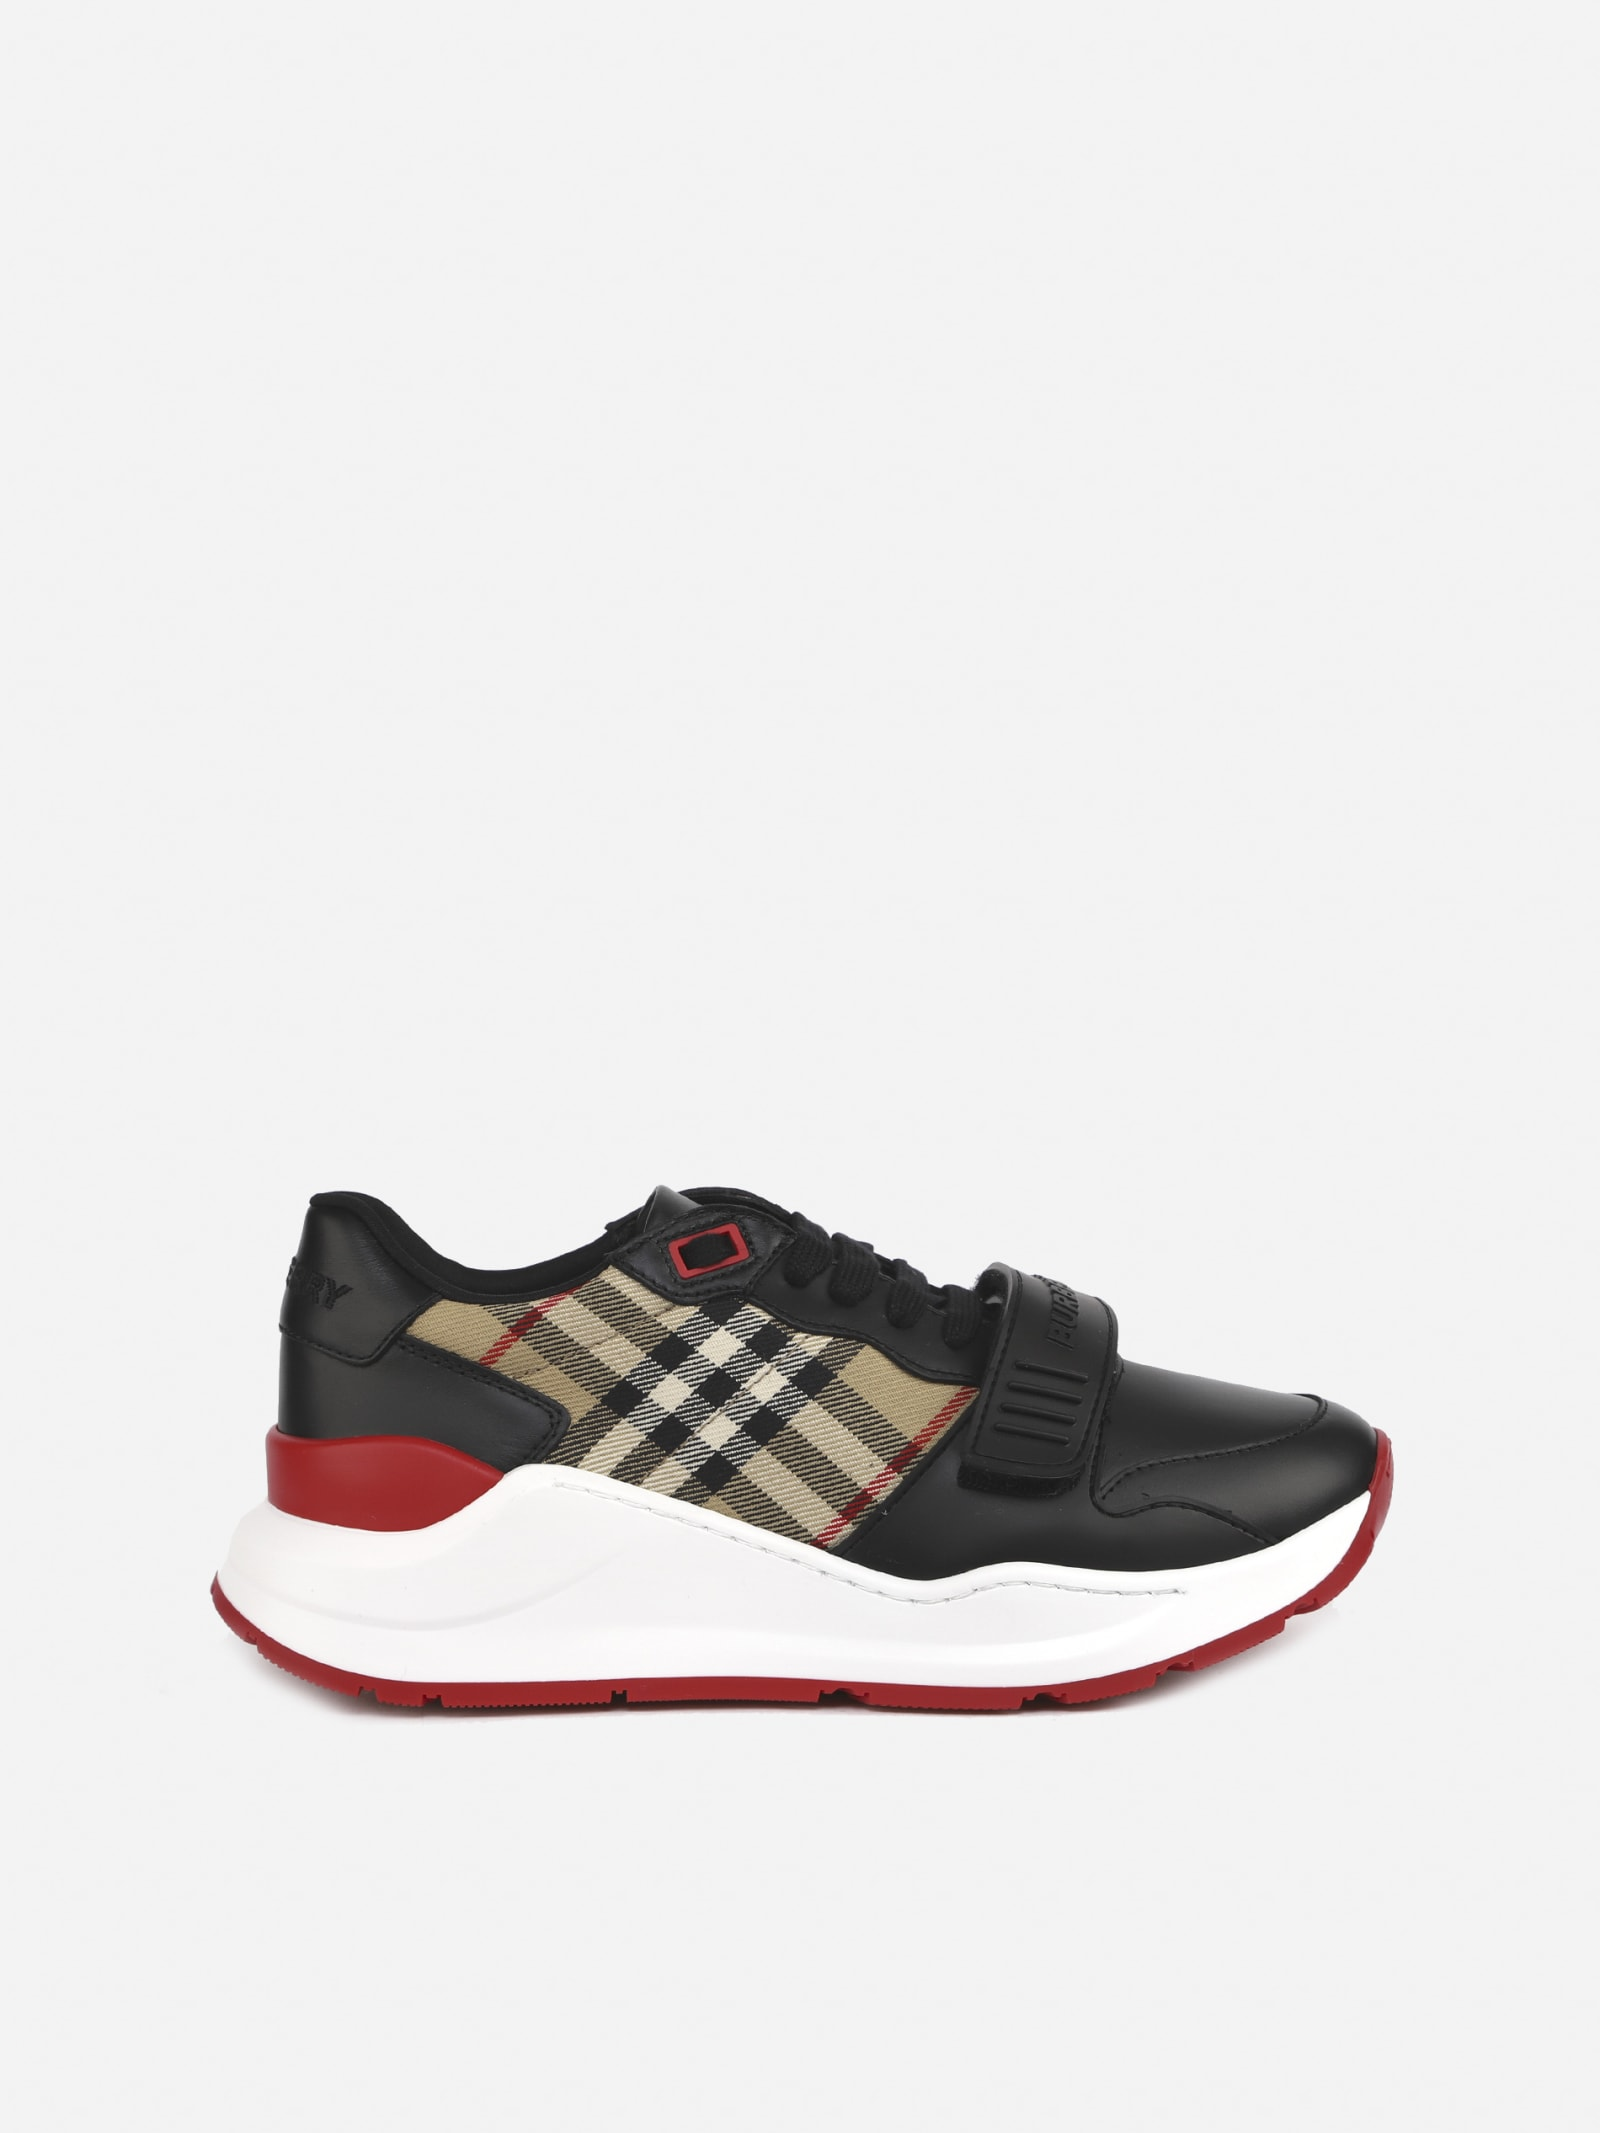 Burberry Sneakers With Leather Inserts And Vintage Check Motif